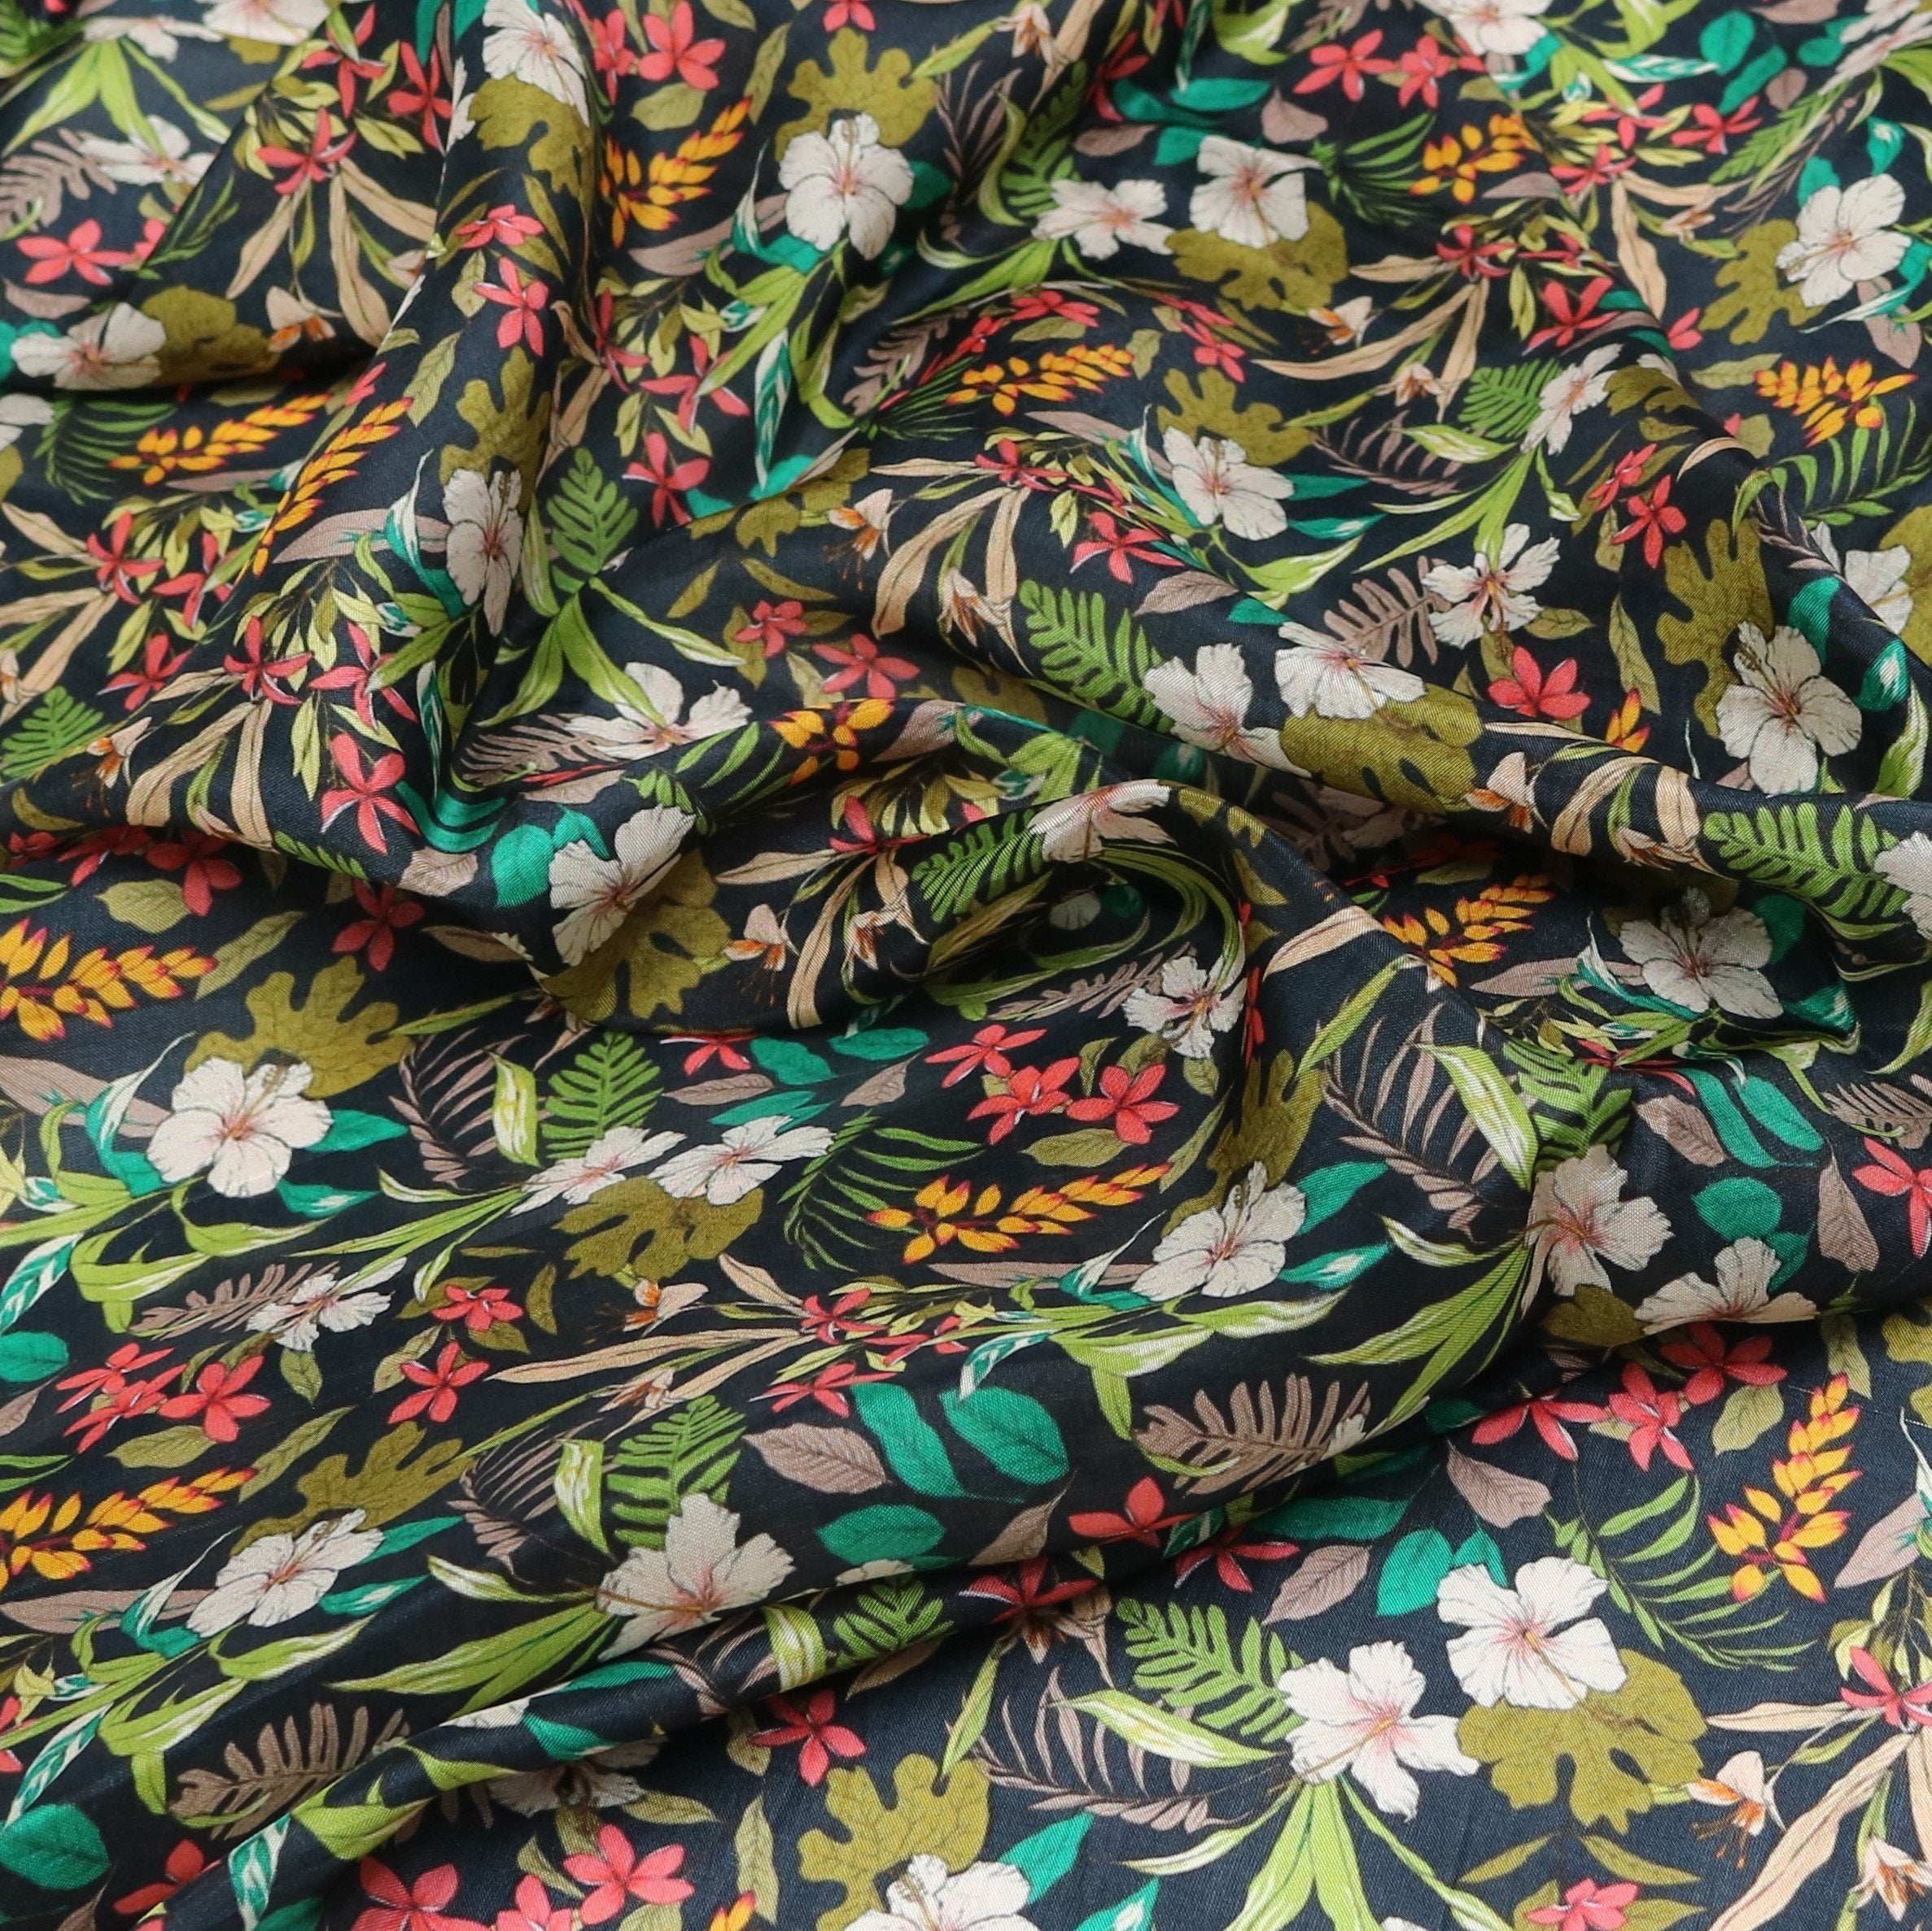 Frangipani Flower Digital Printed Fabrics - FAB VOGUE Studio